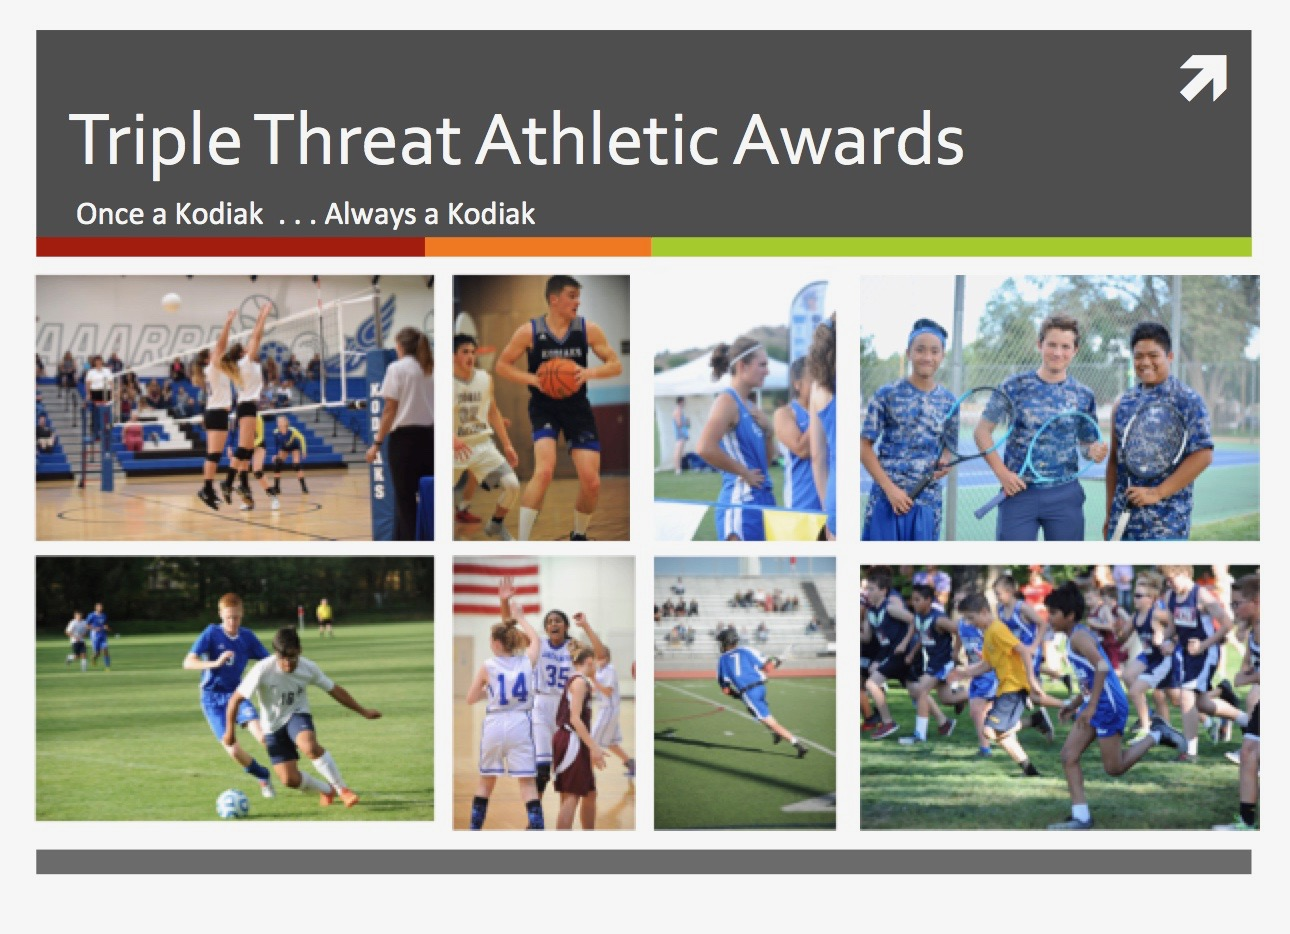 Triple Threat Athletic Awards Announced